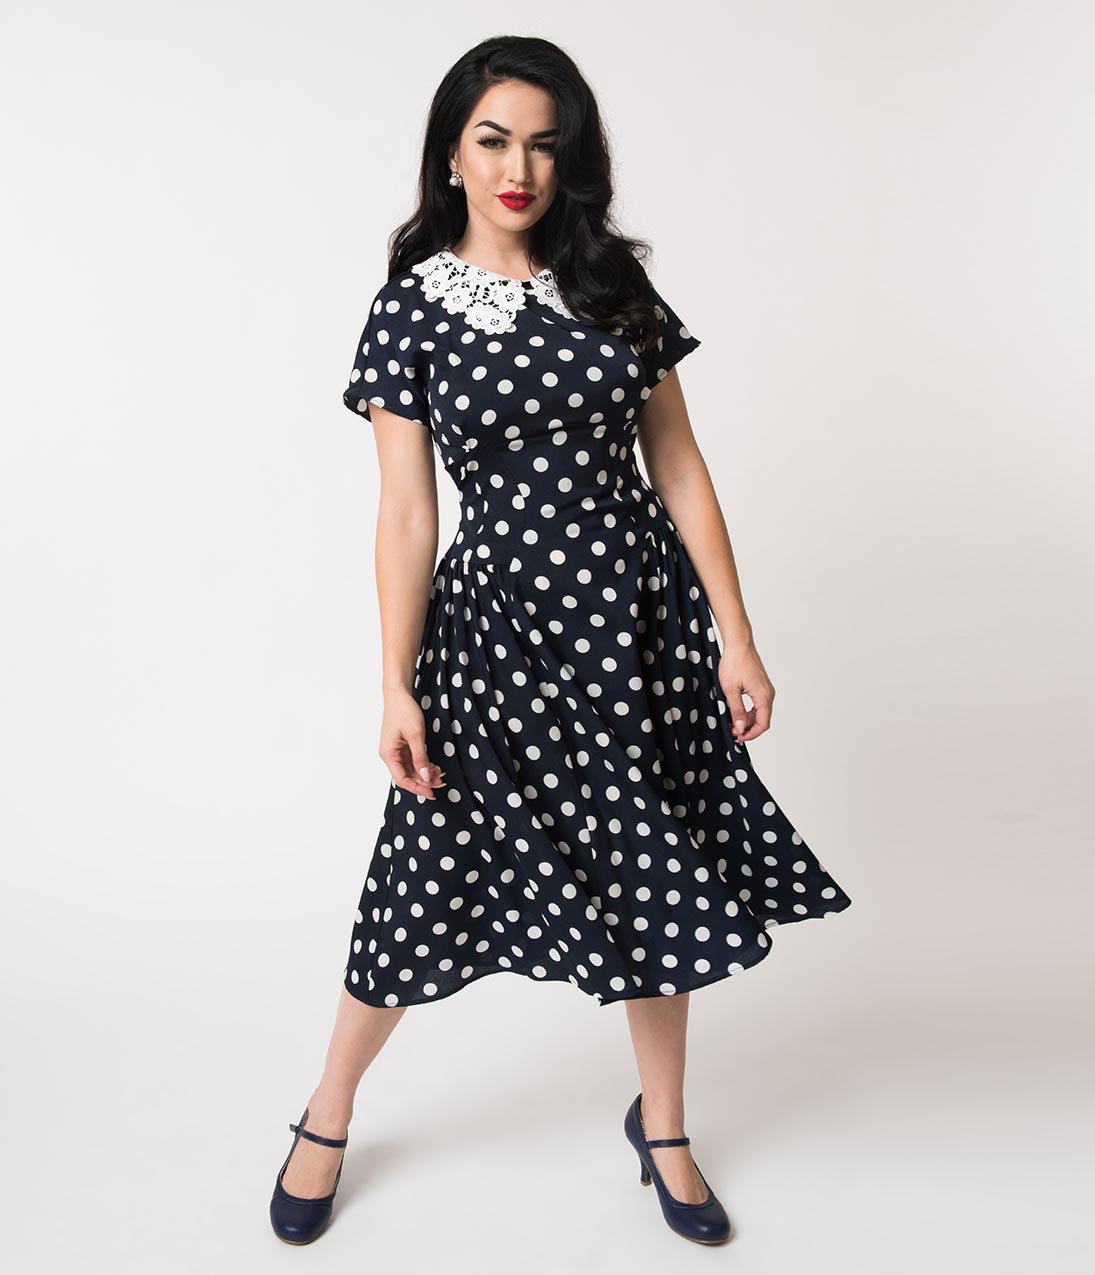 044f3d8fc653 50 Vintage Inspired Clothing Stores Unique Vintage 1940S Navy White Polka  Dot Lace Collar Margie Dress